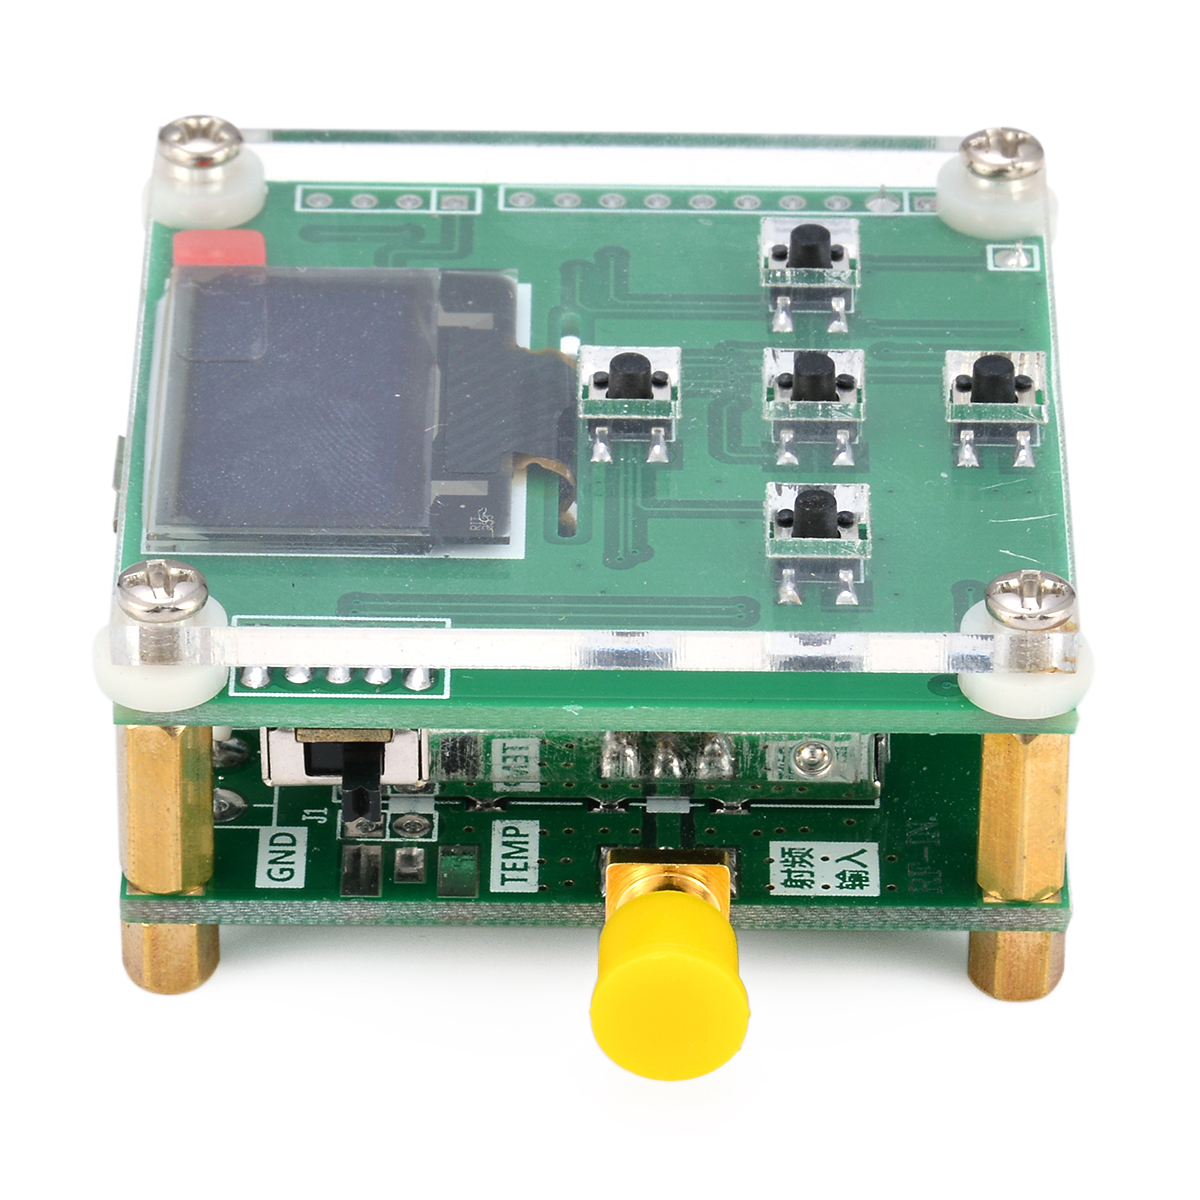 High Accuracy 8GHz RF Power Meter 1-8000Mhz OLED -55 - -5 dBm + Sofware RF Attenuation Value Mayitr Electrical Instruments new 8ghz oled lcd power meter 45 5 dbm sofware rf attenuation value digital a7 014